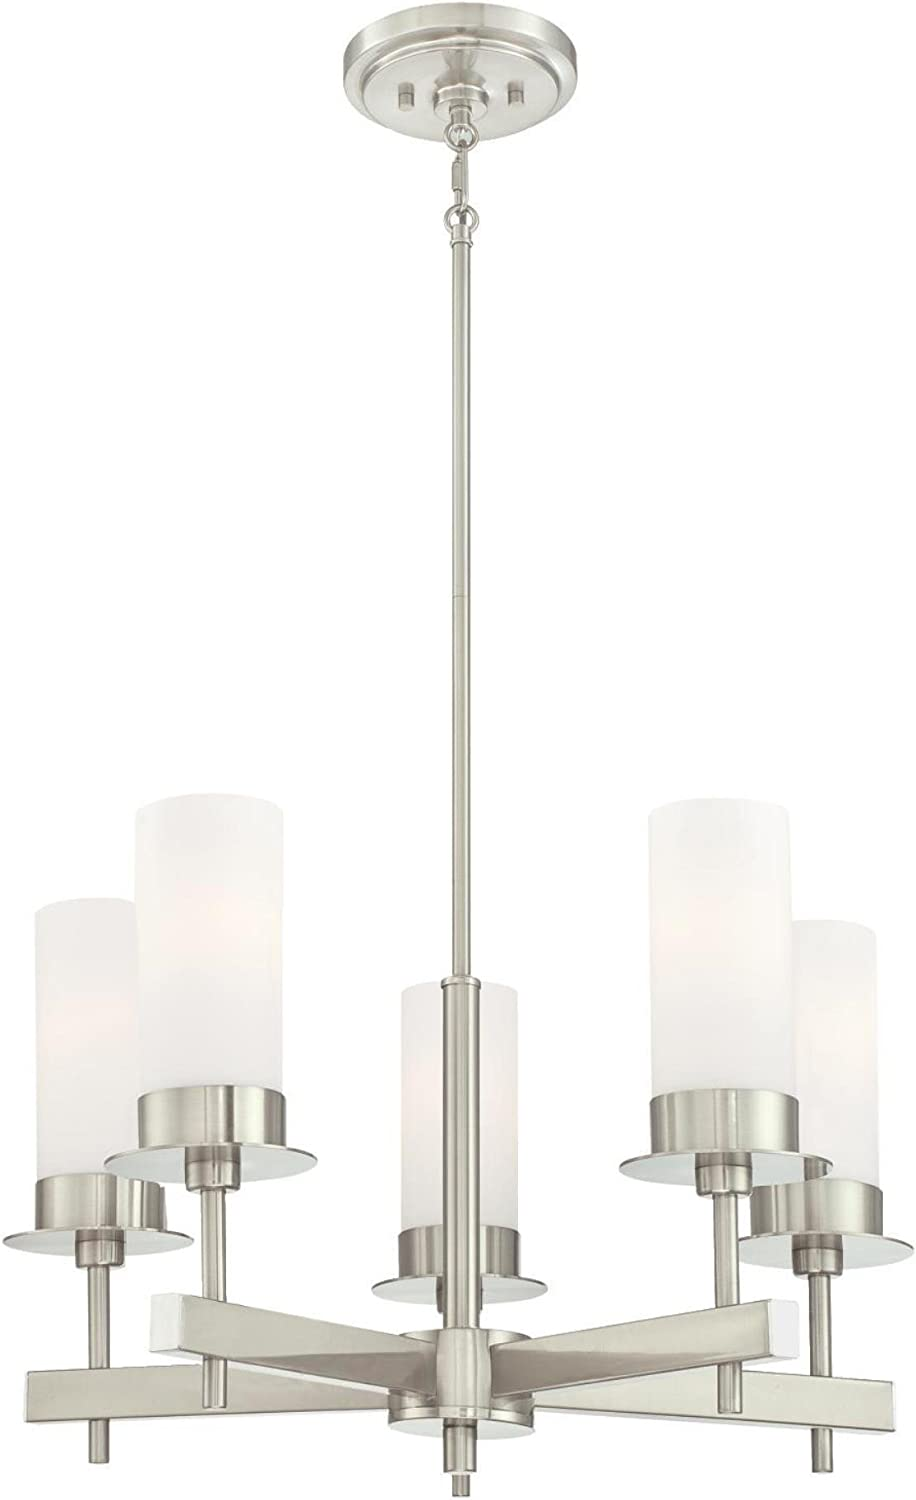 Westinghouse Lighting 6327000 Roswell Five-Light Indoor Chandelier, Brushed Nickel Finish with Frosted Opal Glass,